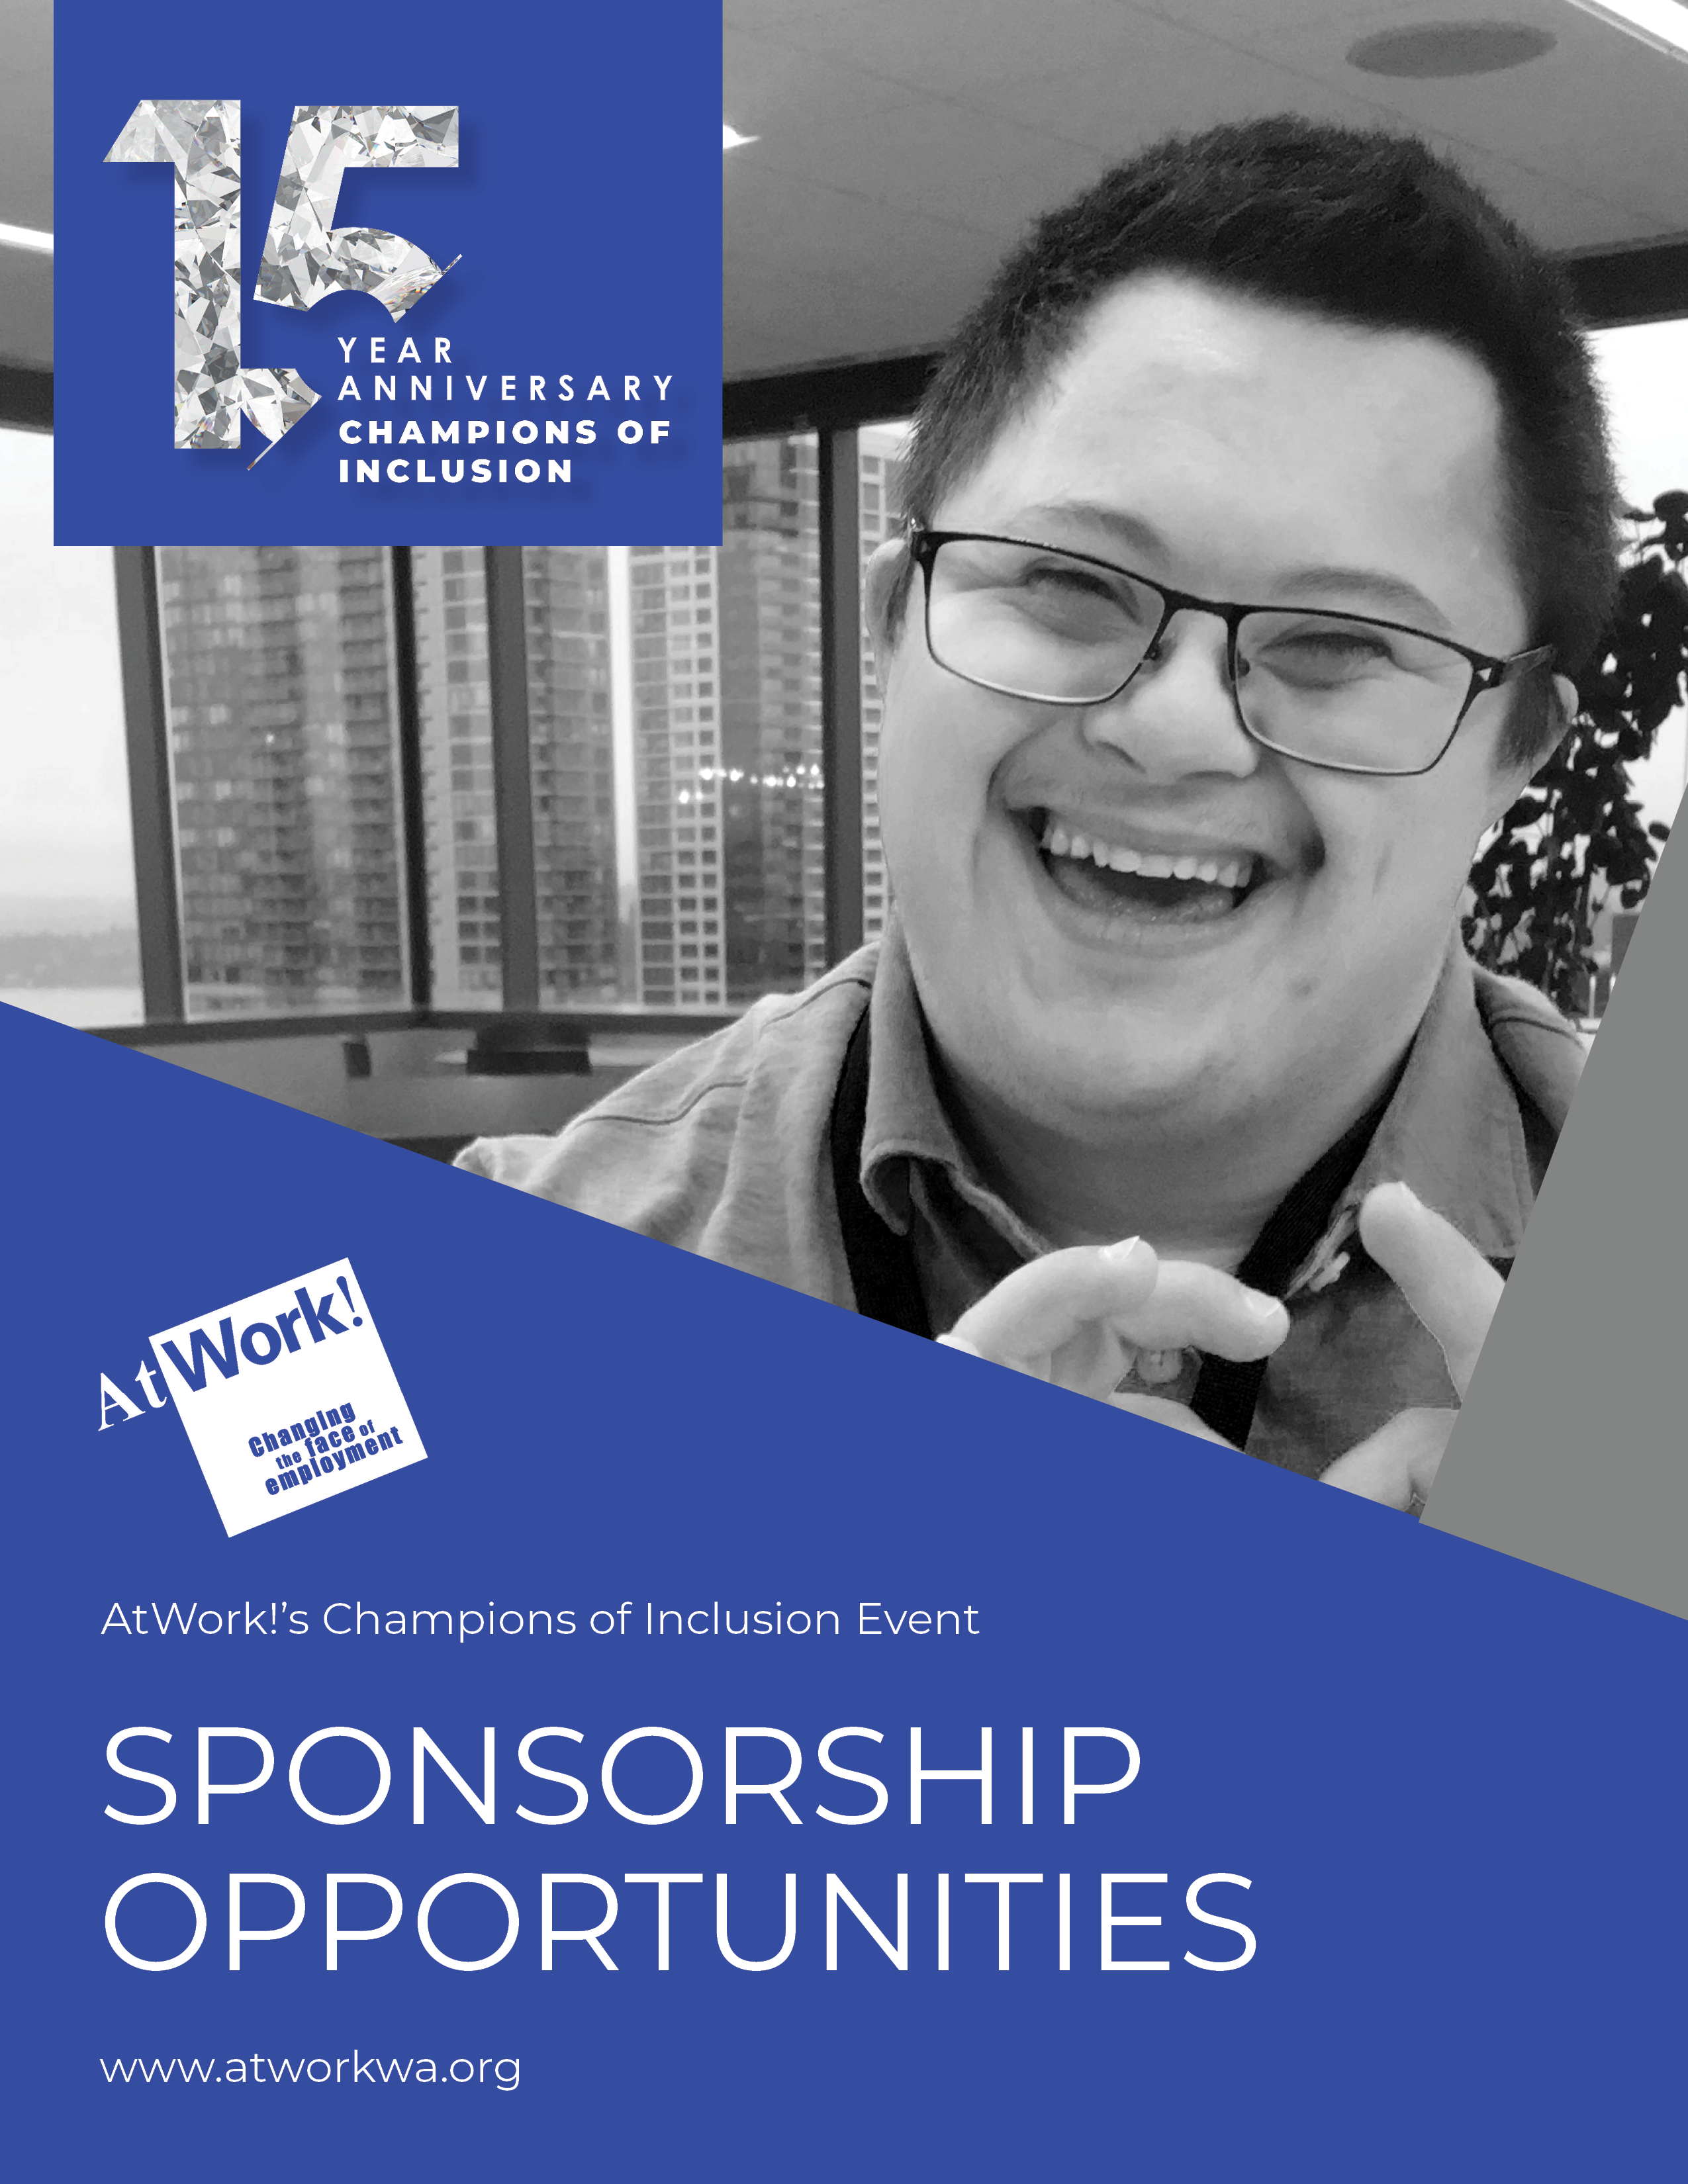 The cover of the 15th Annual Sponsorship Packet. Includes a Asian-American man smiling at the camera and a 15th anniversary emblem.